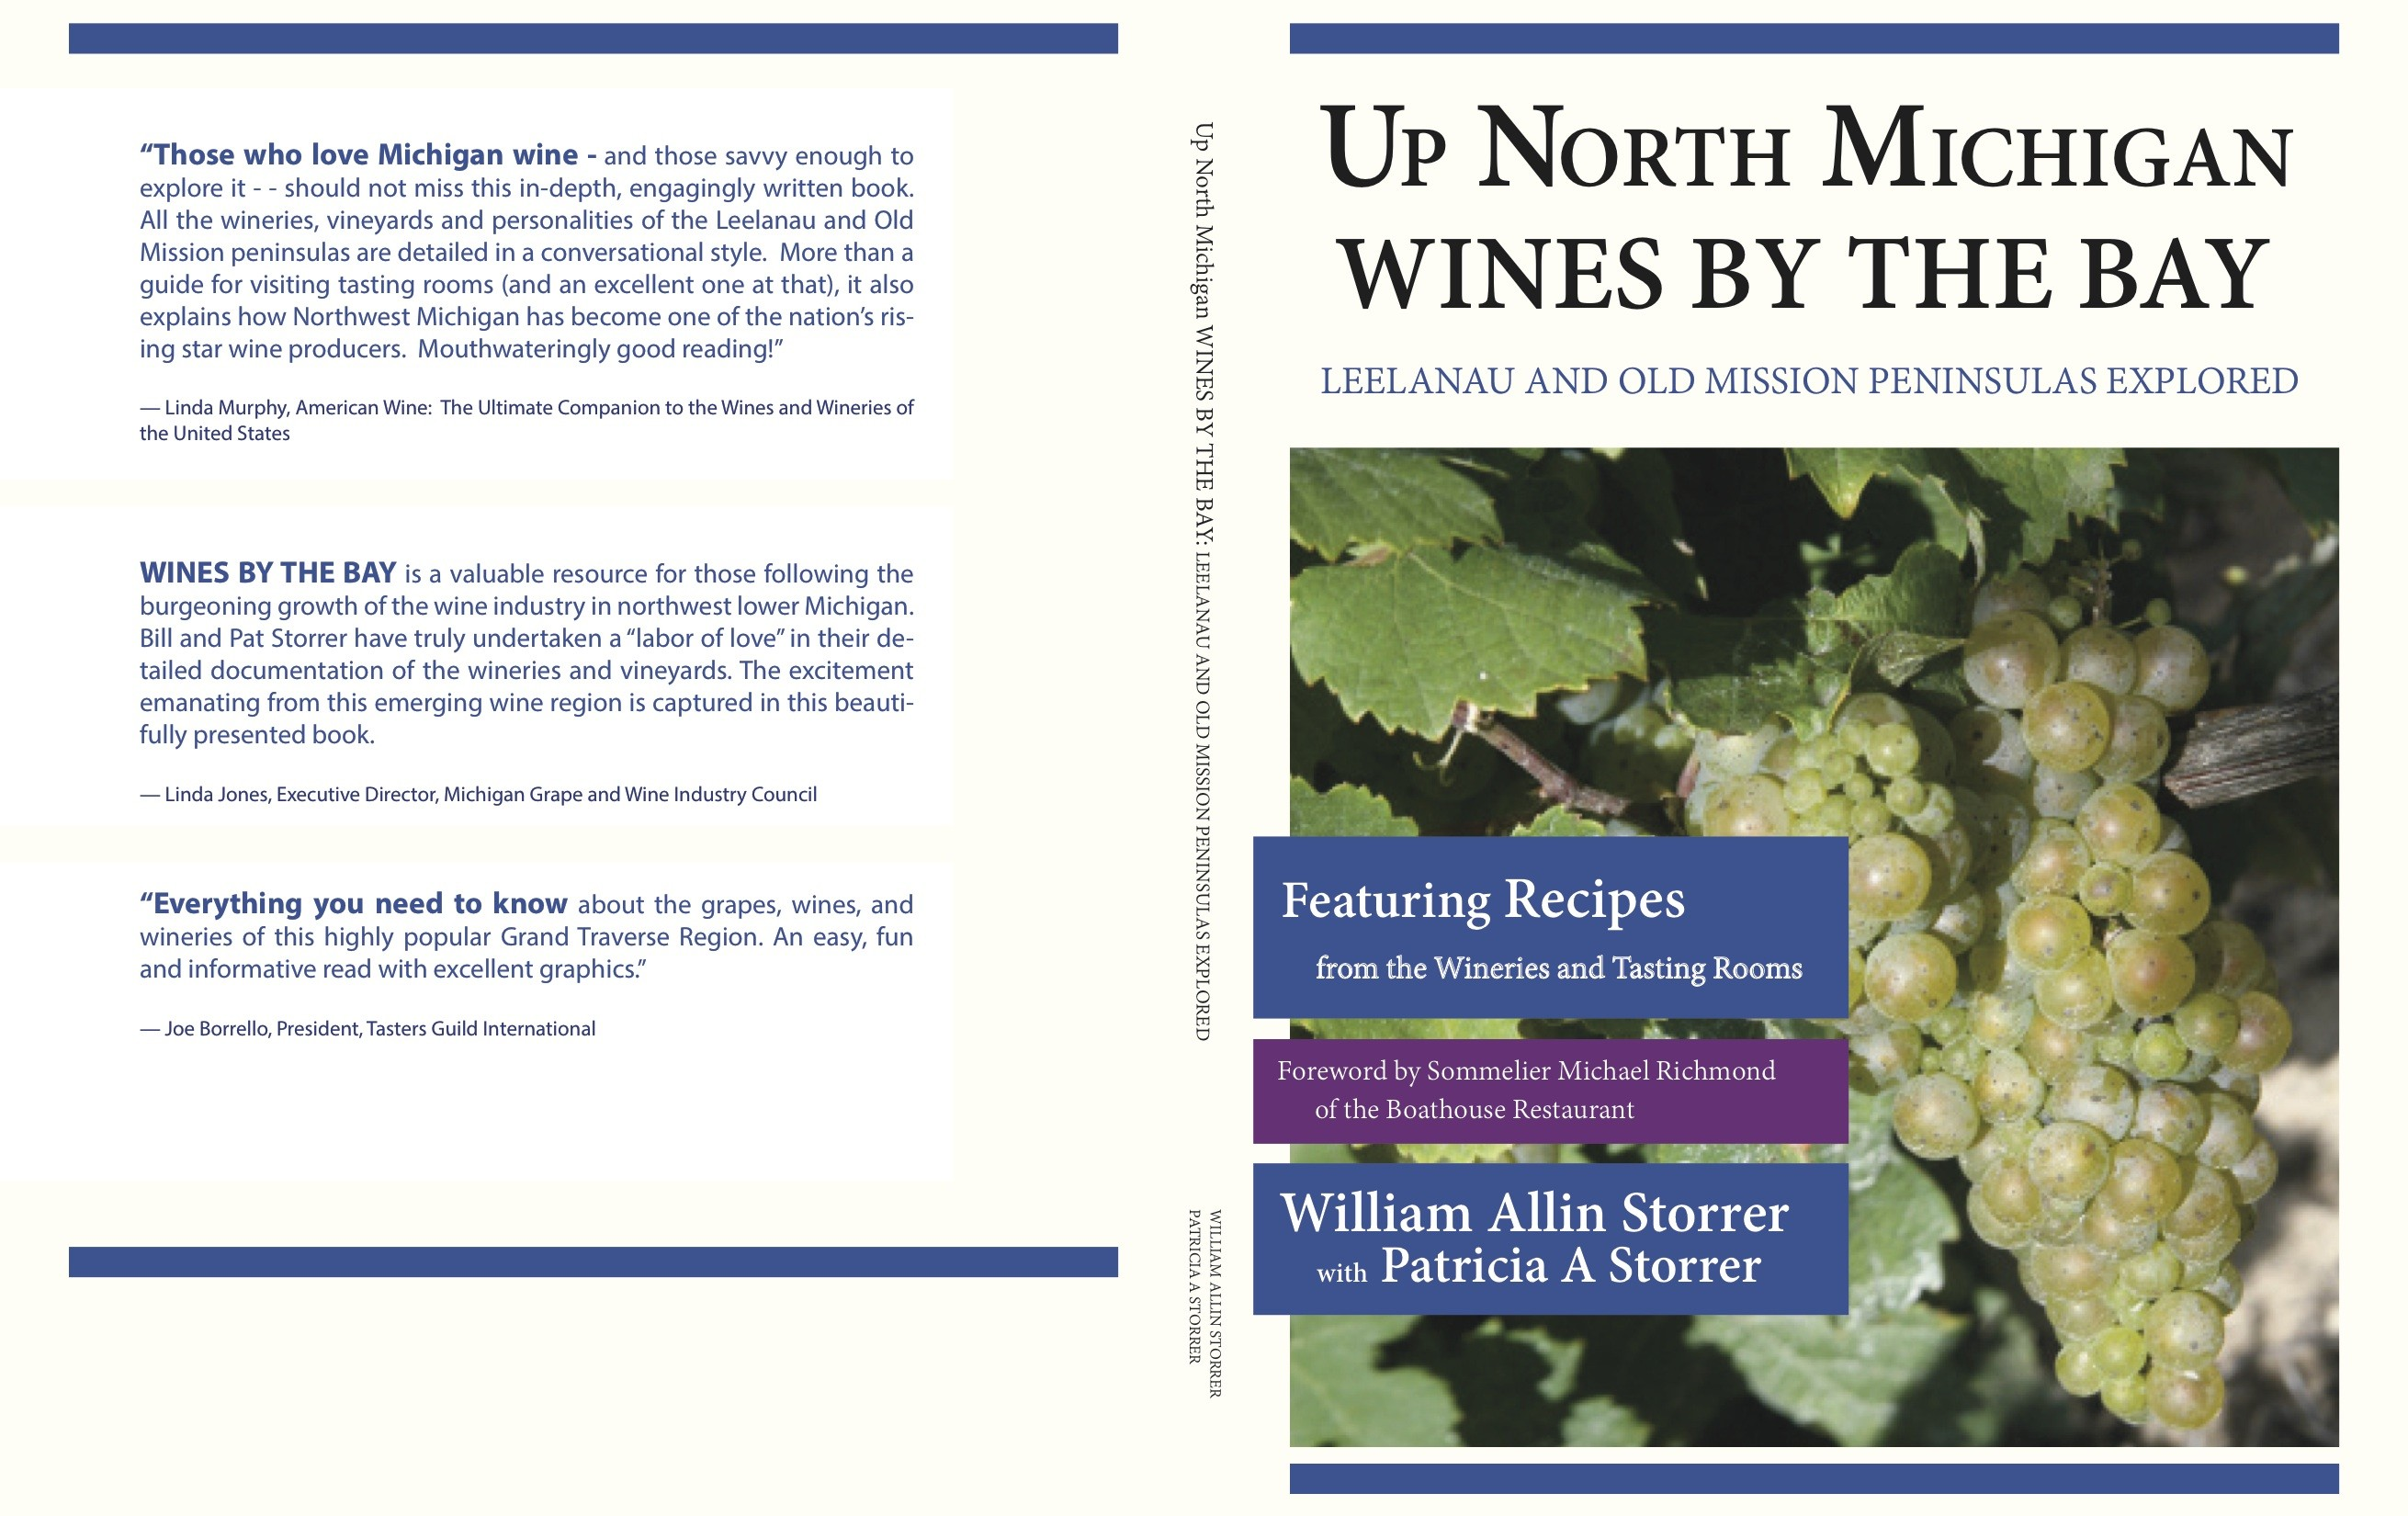 Up North Michigan Wines By The Bay